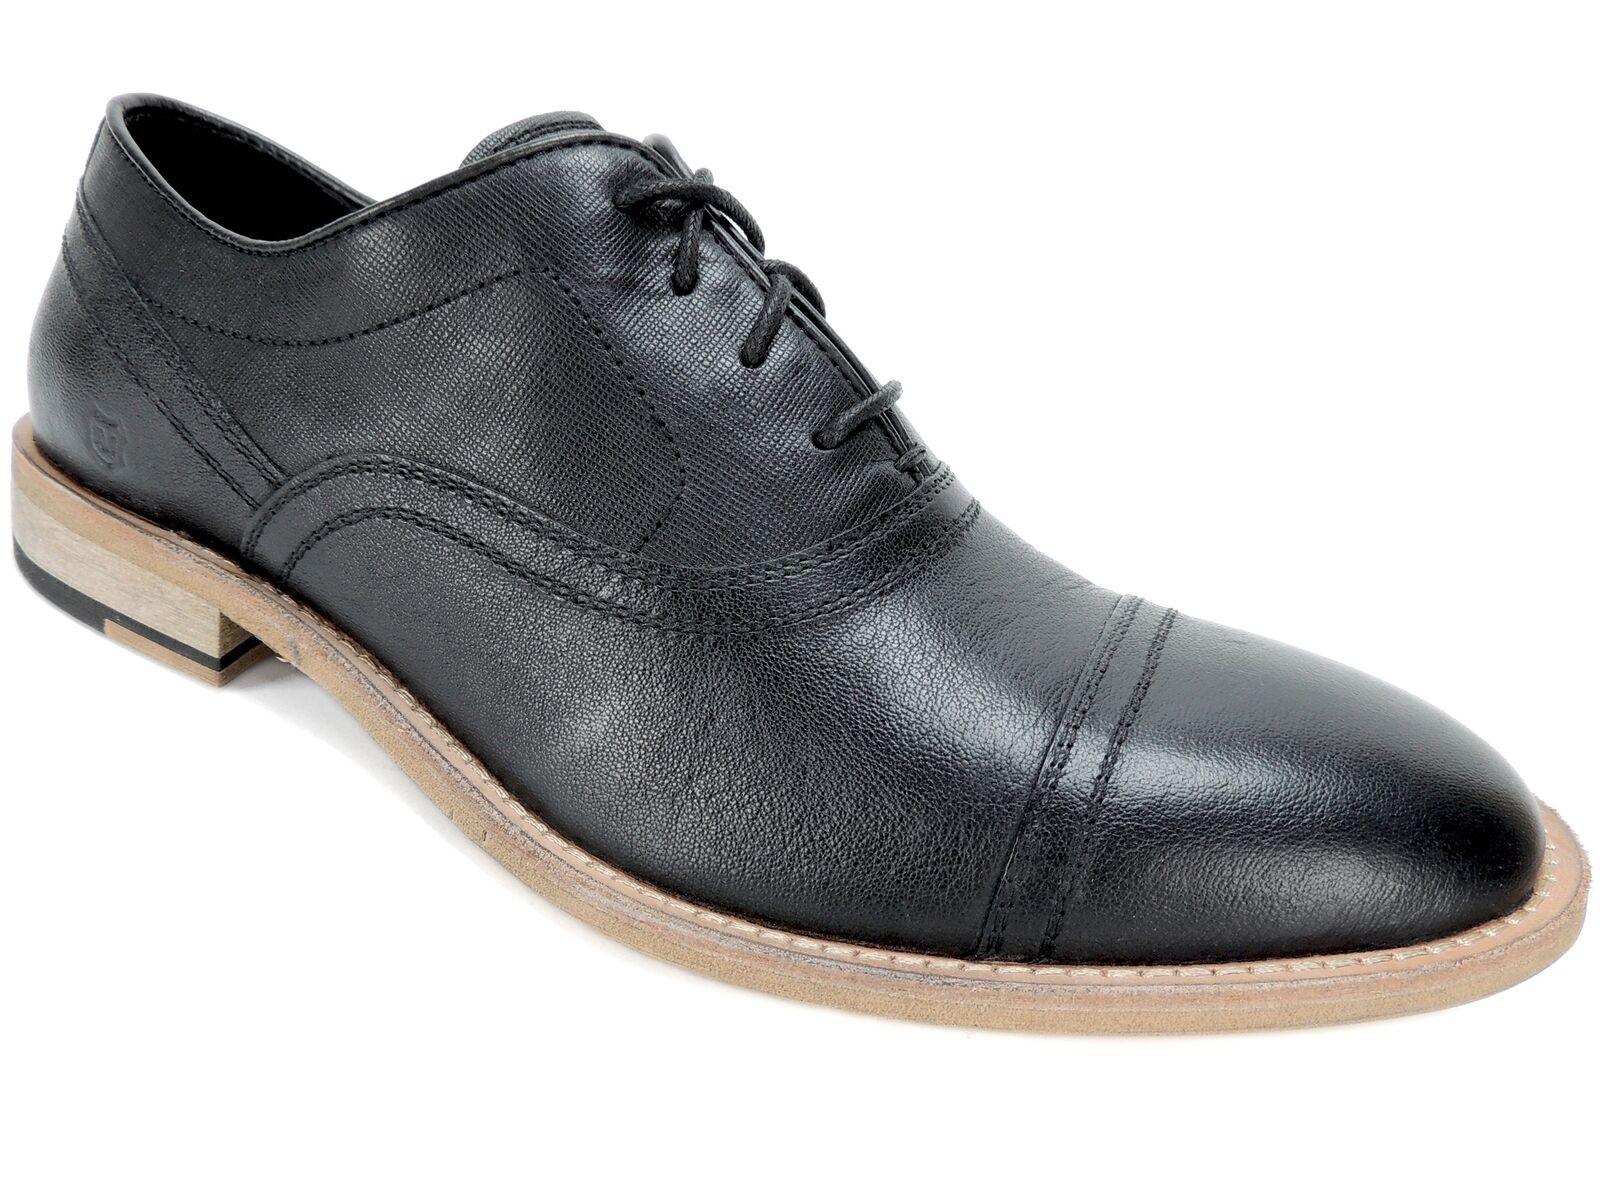 Andrew Marc Men's Henry Casual Oxfords Espresso Black Leather Size 8.5 D